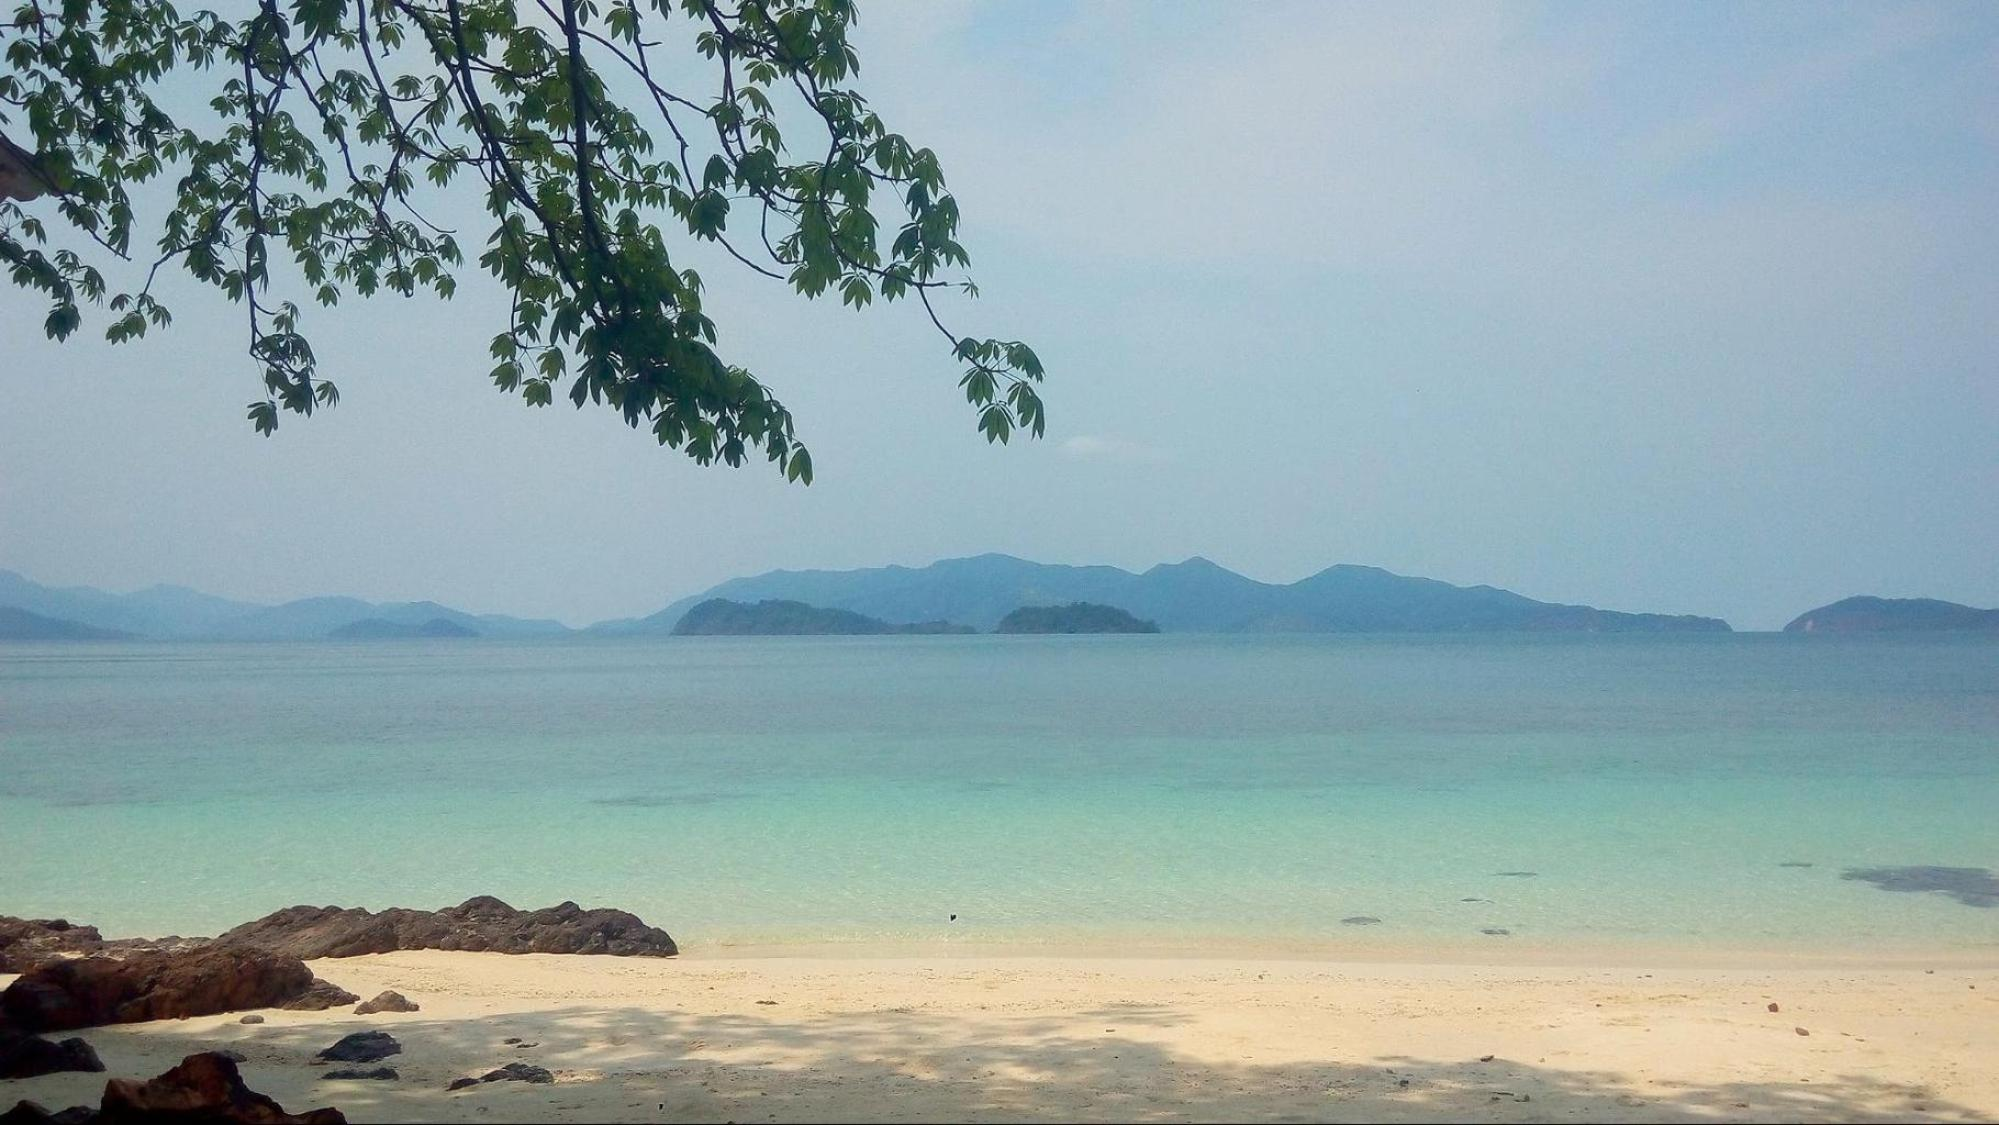 Koh Wai Beach in Thailand